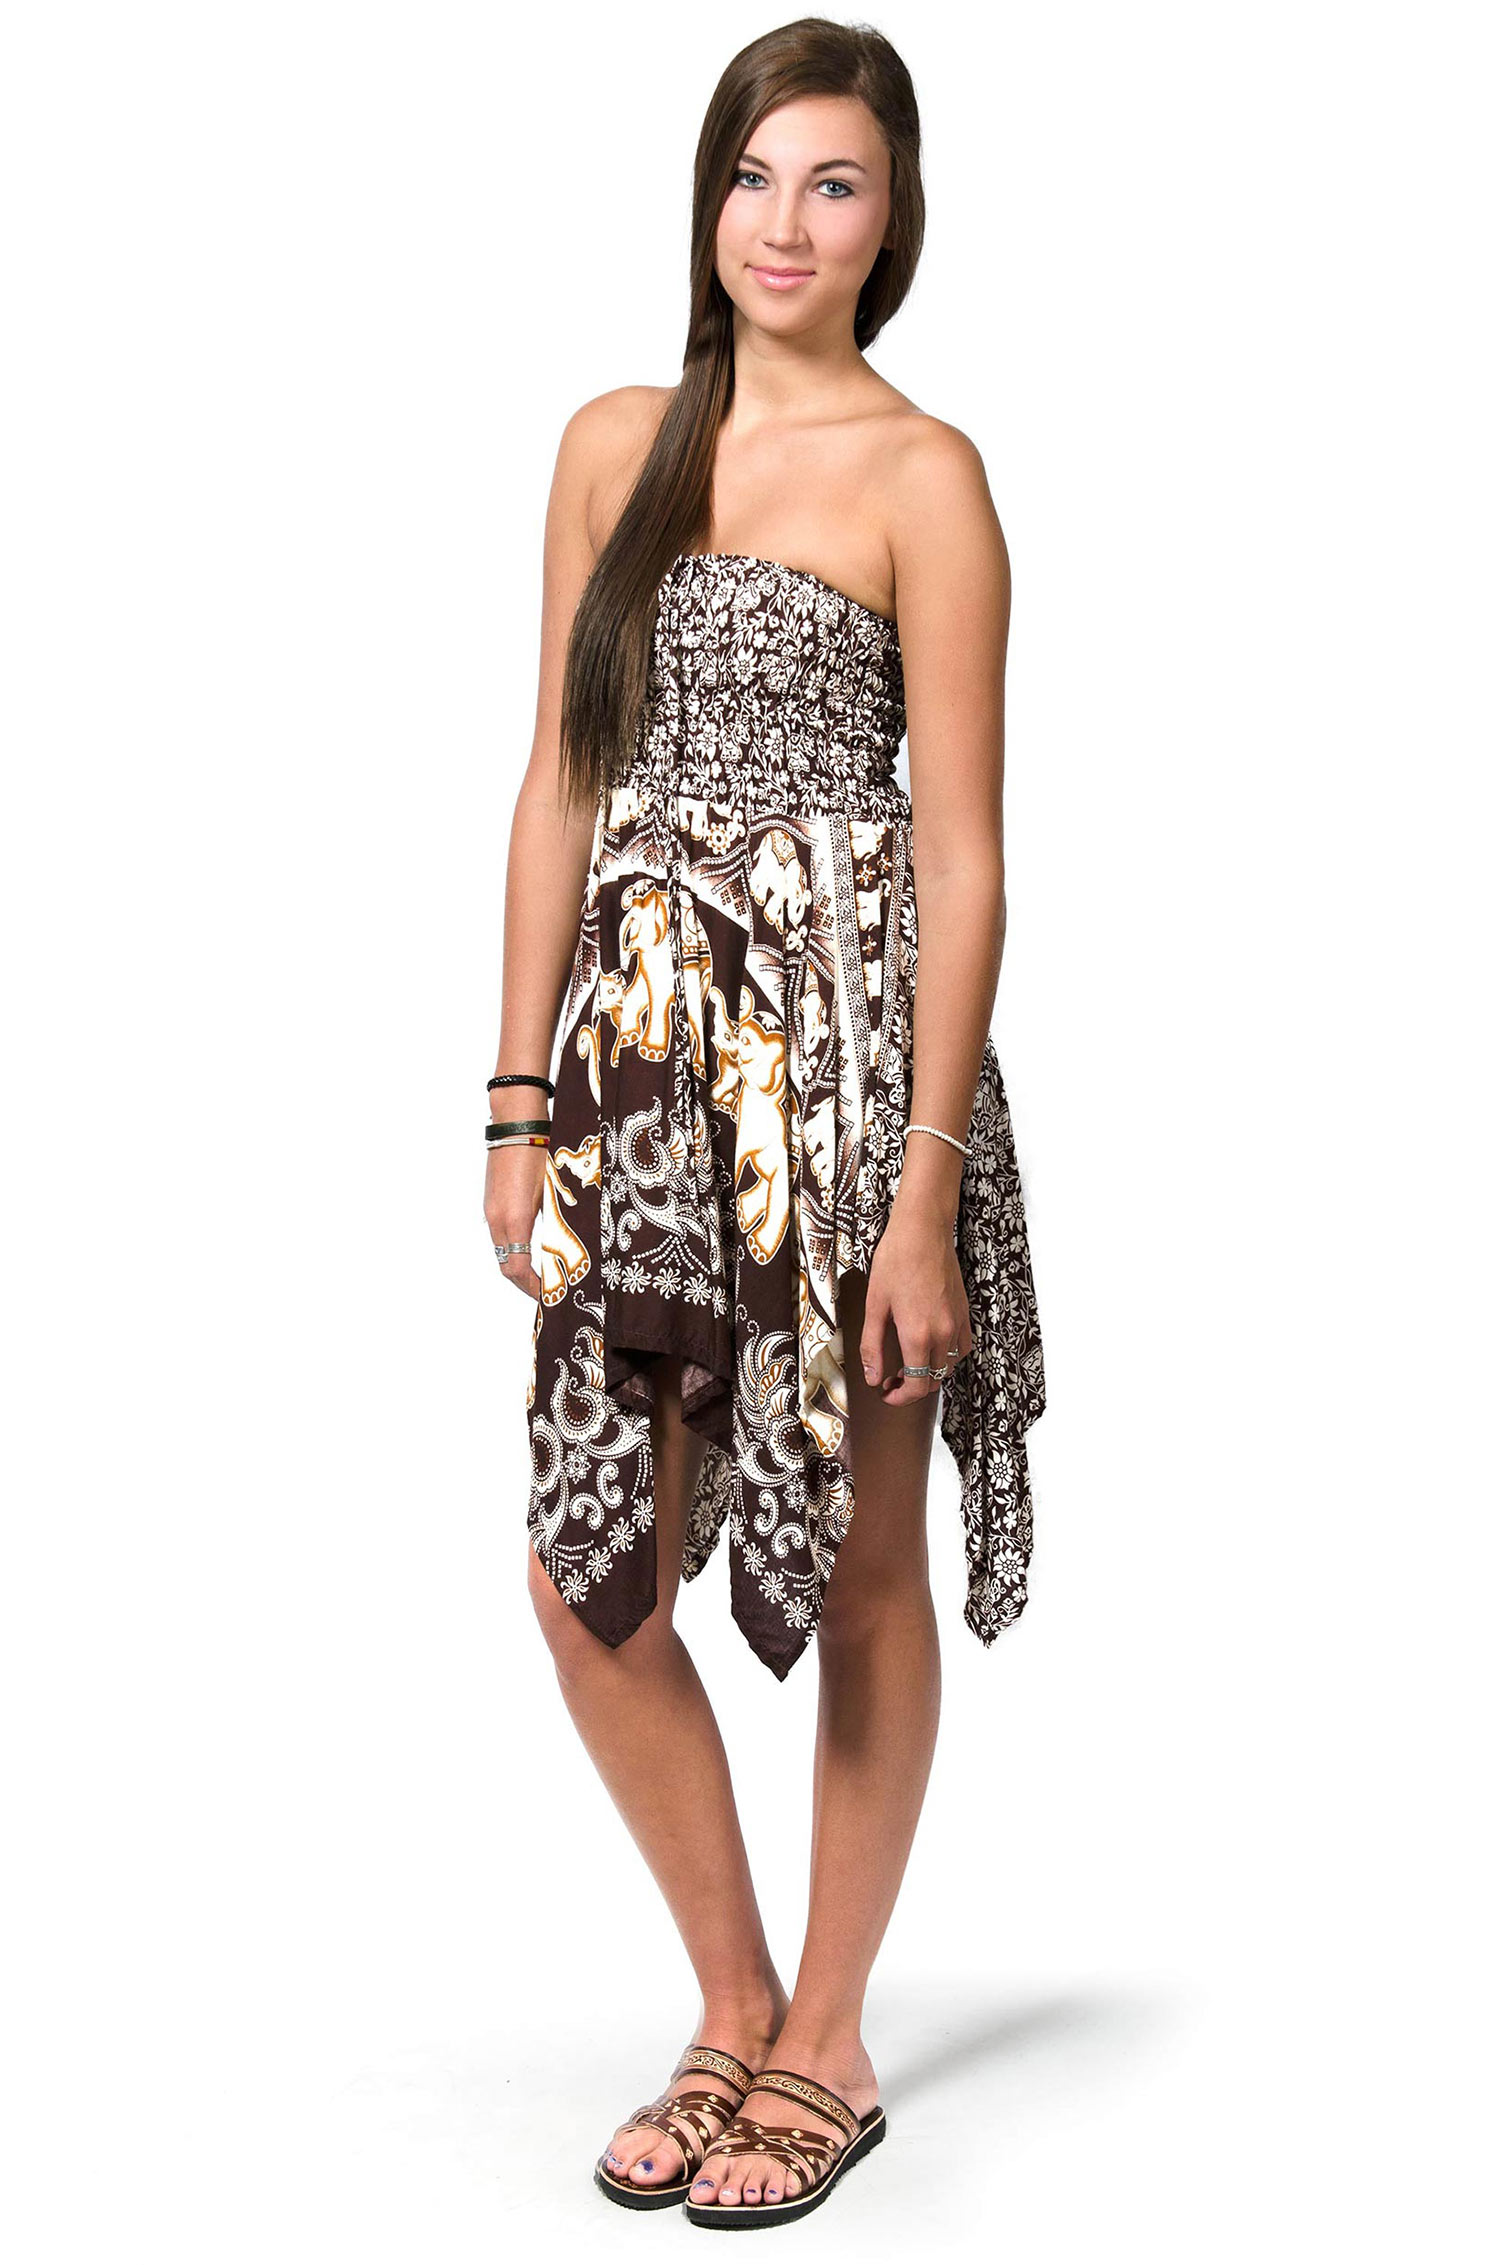 Elephant Print Convertible Fairy Dress - Skirt - Brown